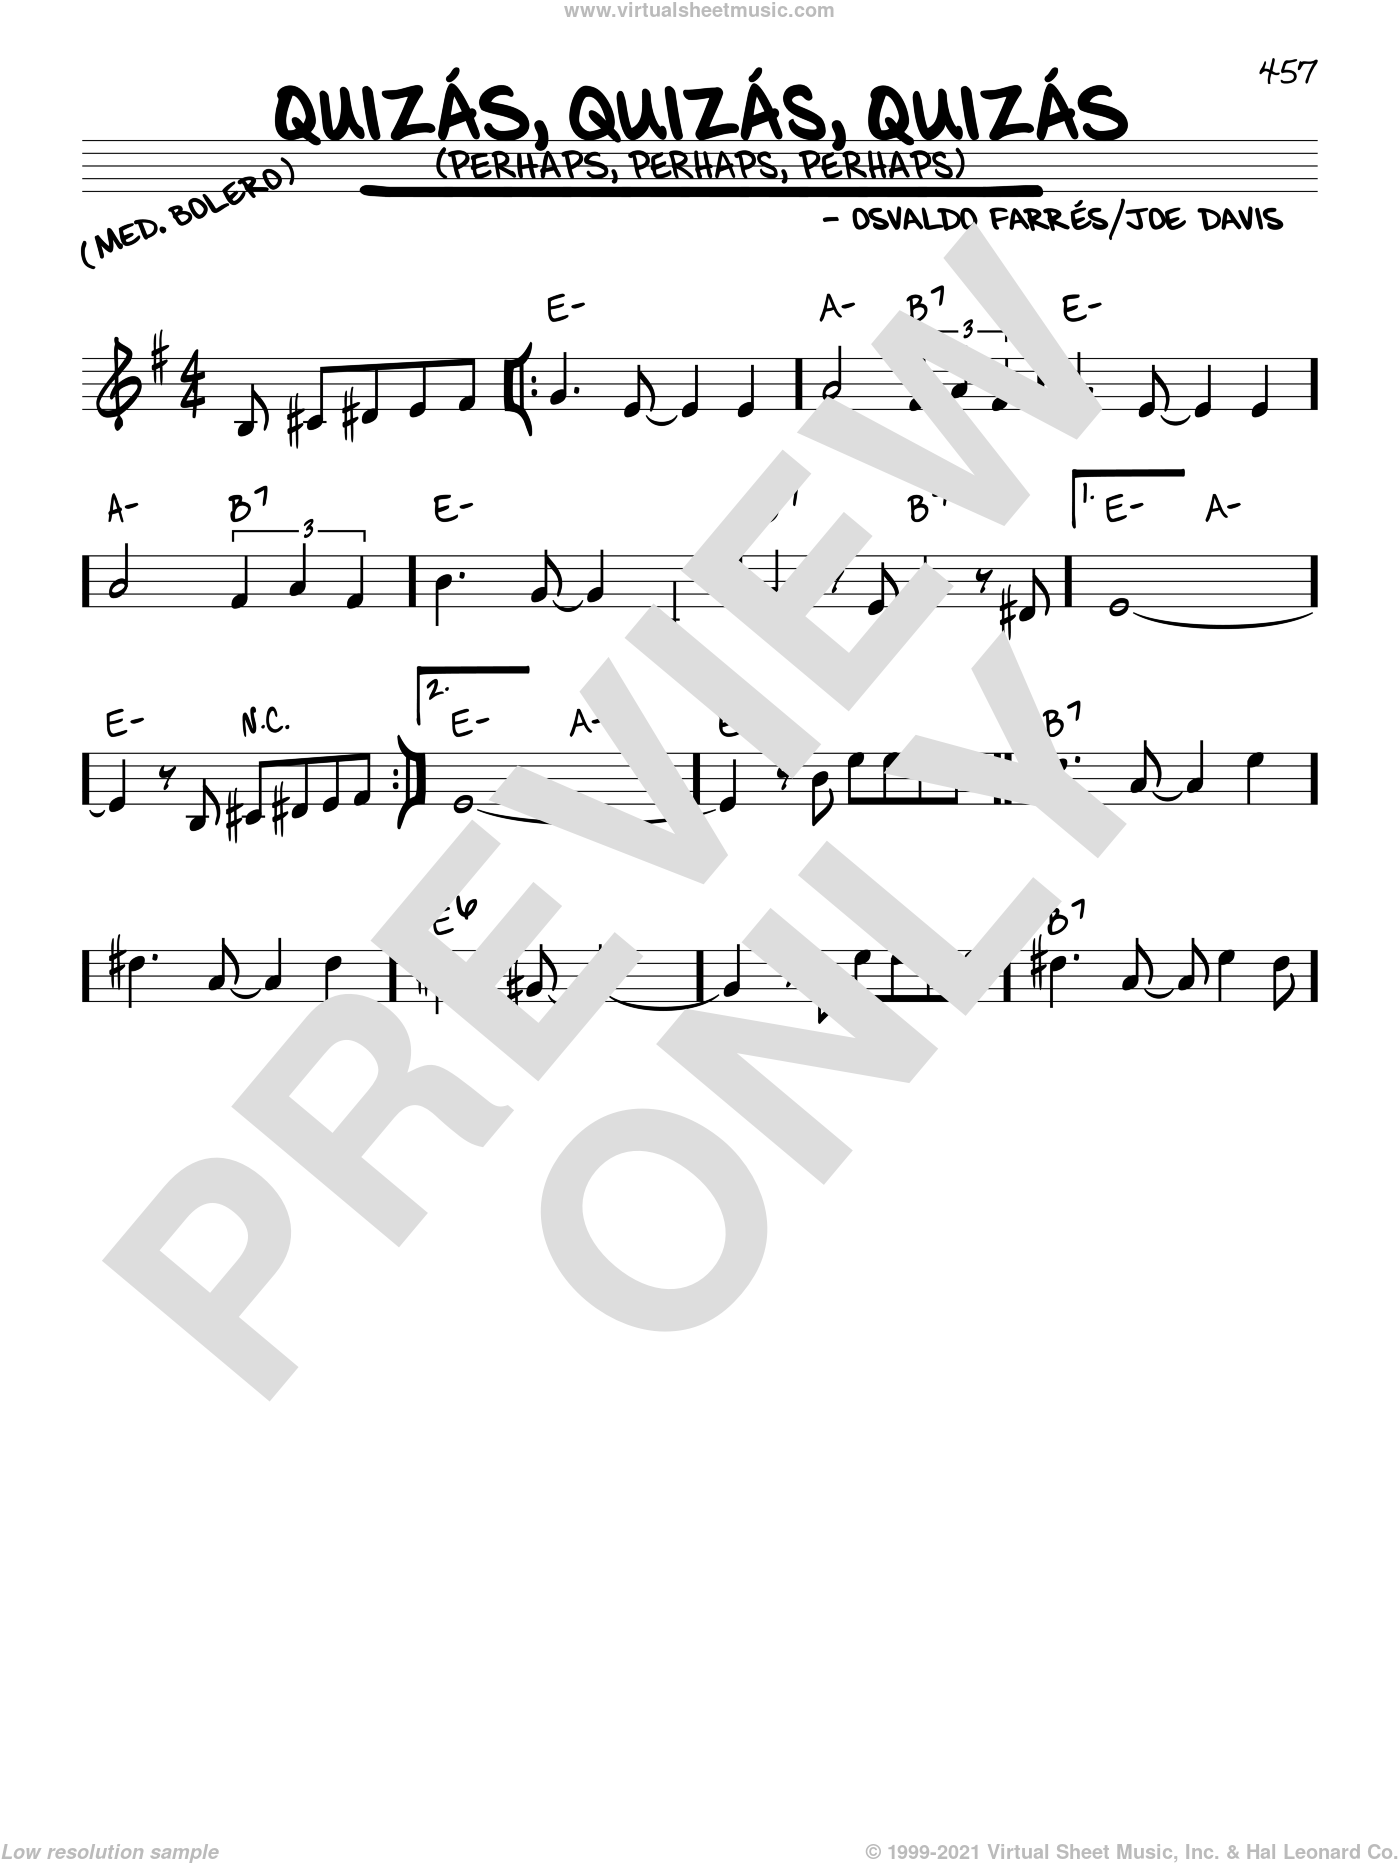 Quizas, Quizas, Quizas (Perhaps, Perhaps, Perhaps) sheet music for voice and other instruments (C) by Joe Davis